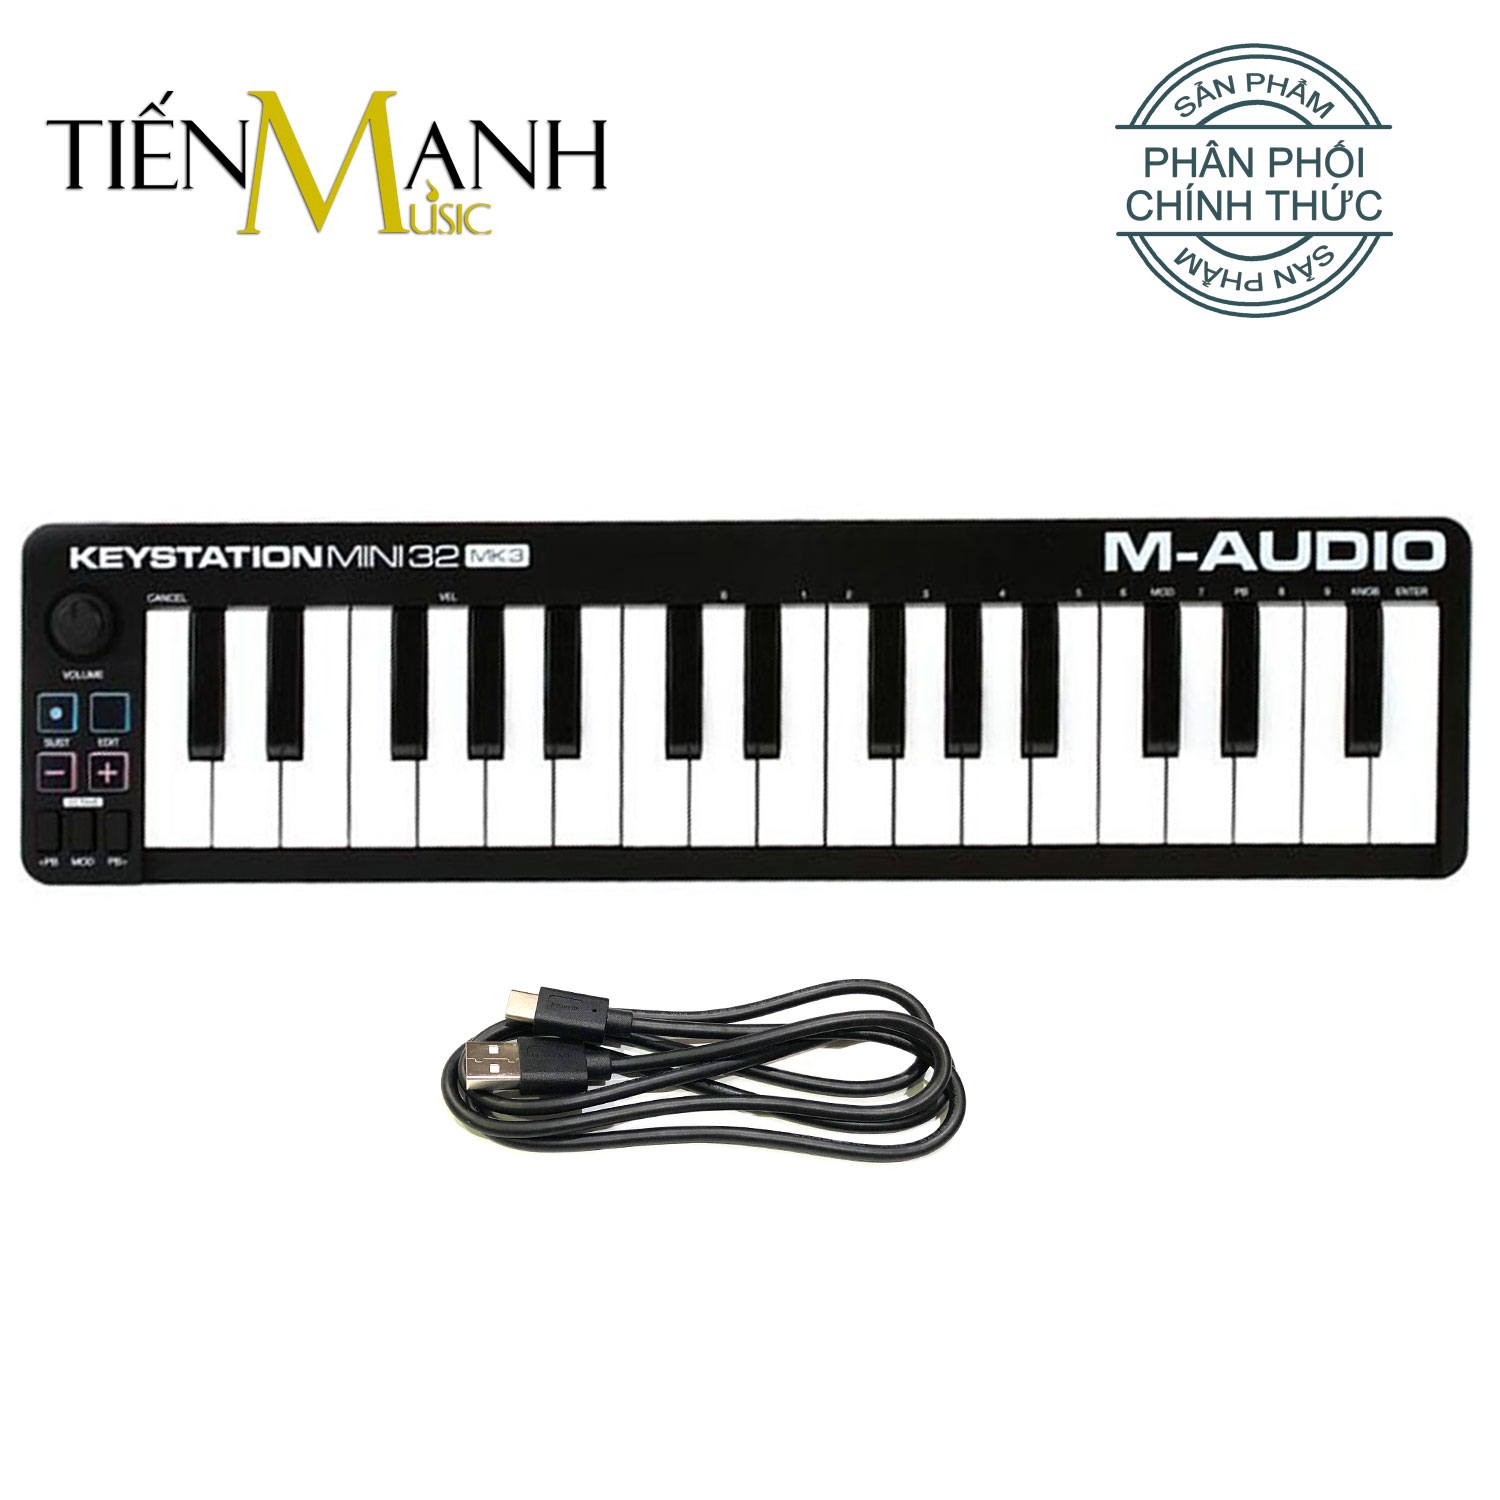 M-Audio Keystation Mini 32 MK3 Ultra Portable USB MIDI Keyboard Controller MKIII With ProTools First